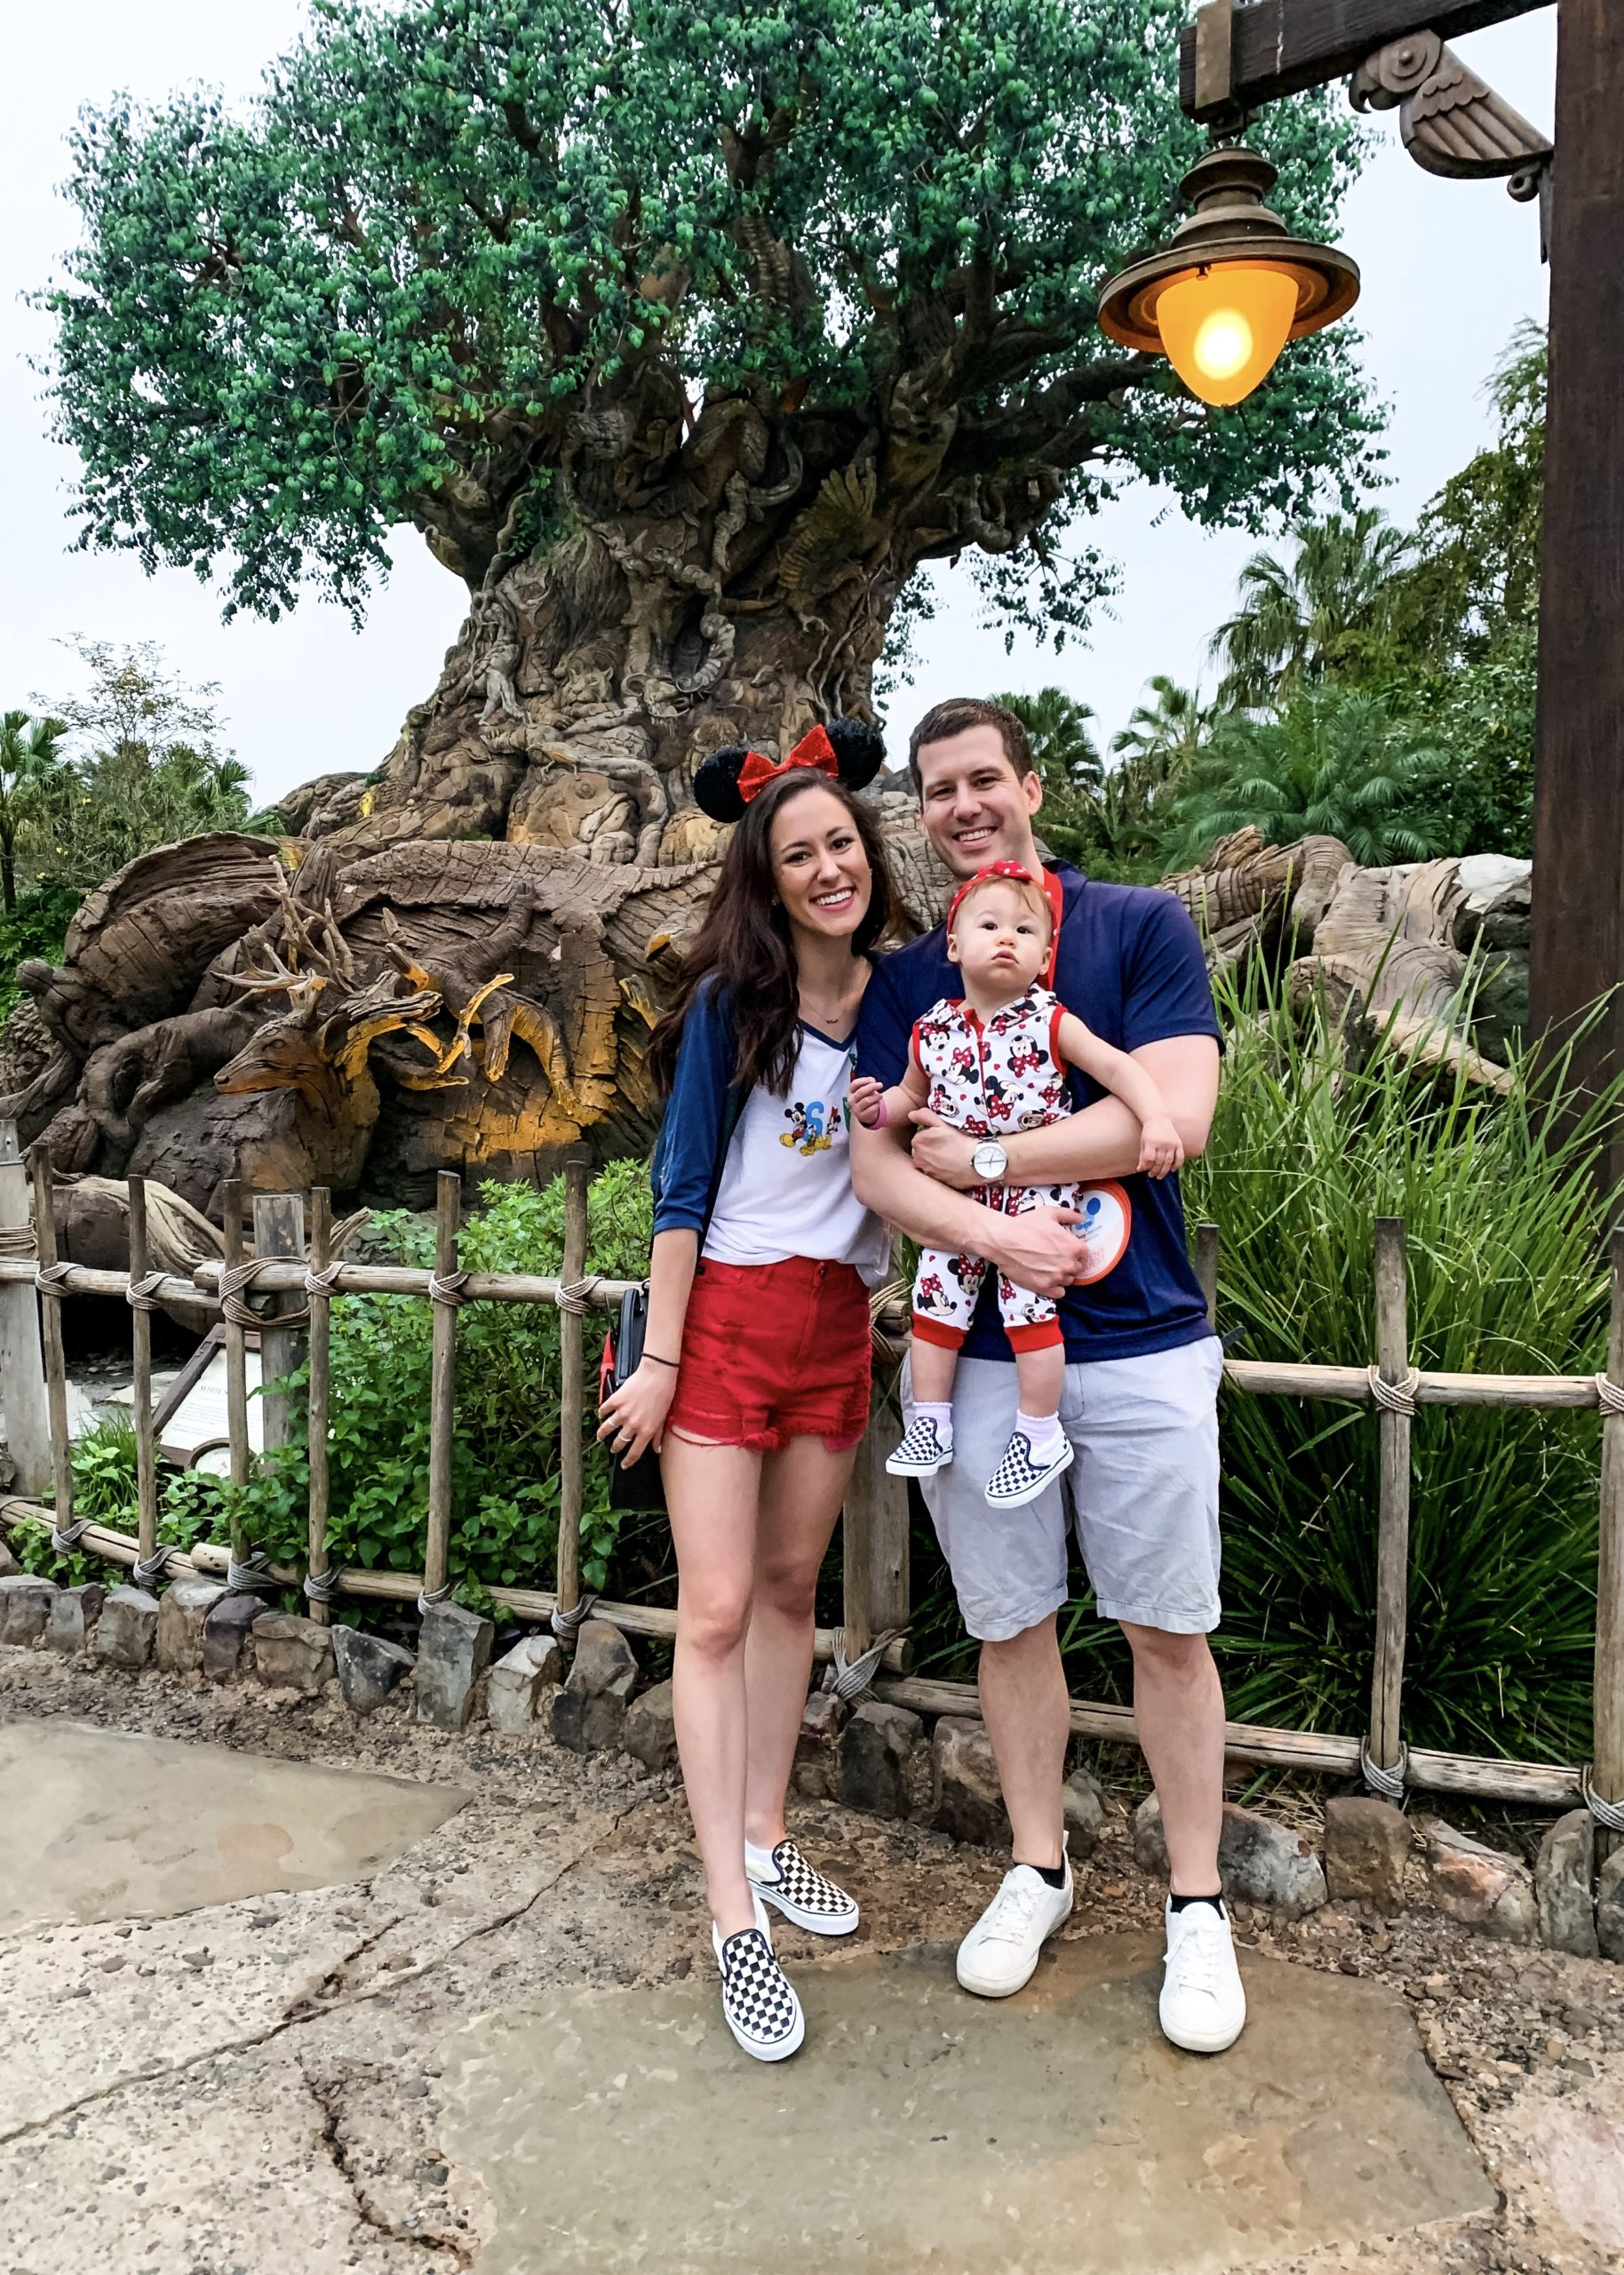 A Full Recap of #DisneyCreatorDays - 7 Days at Disney World and on a Disney Cruise! - Tree of Life in Animal Kingdom